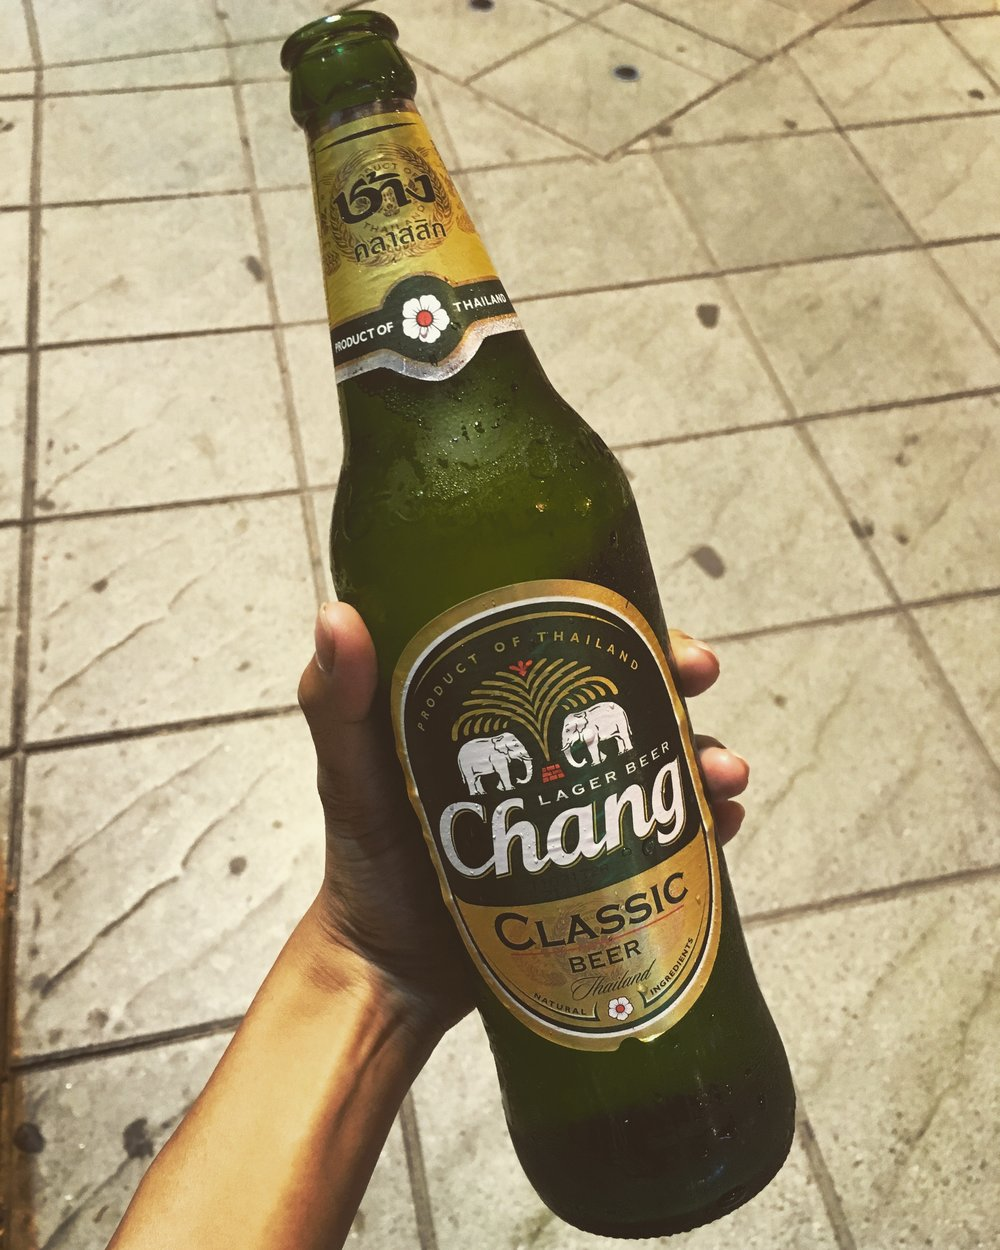 If you feel like you have big hands, Large Chang begs to differ.